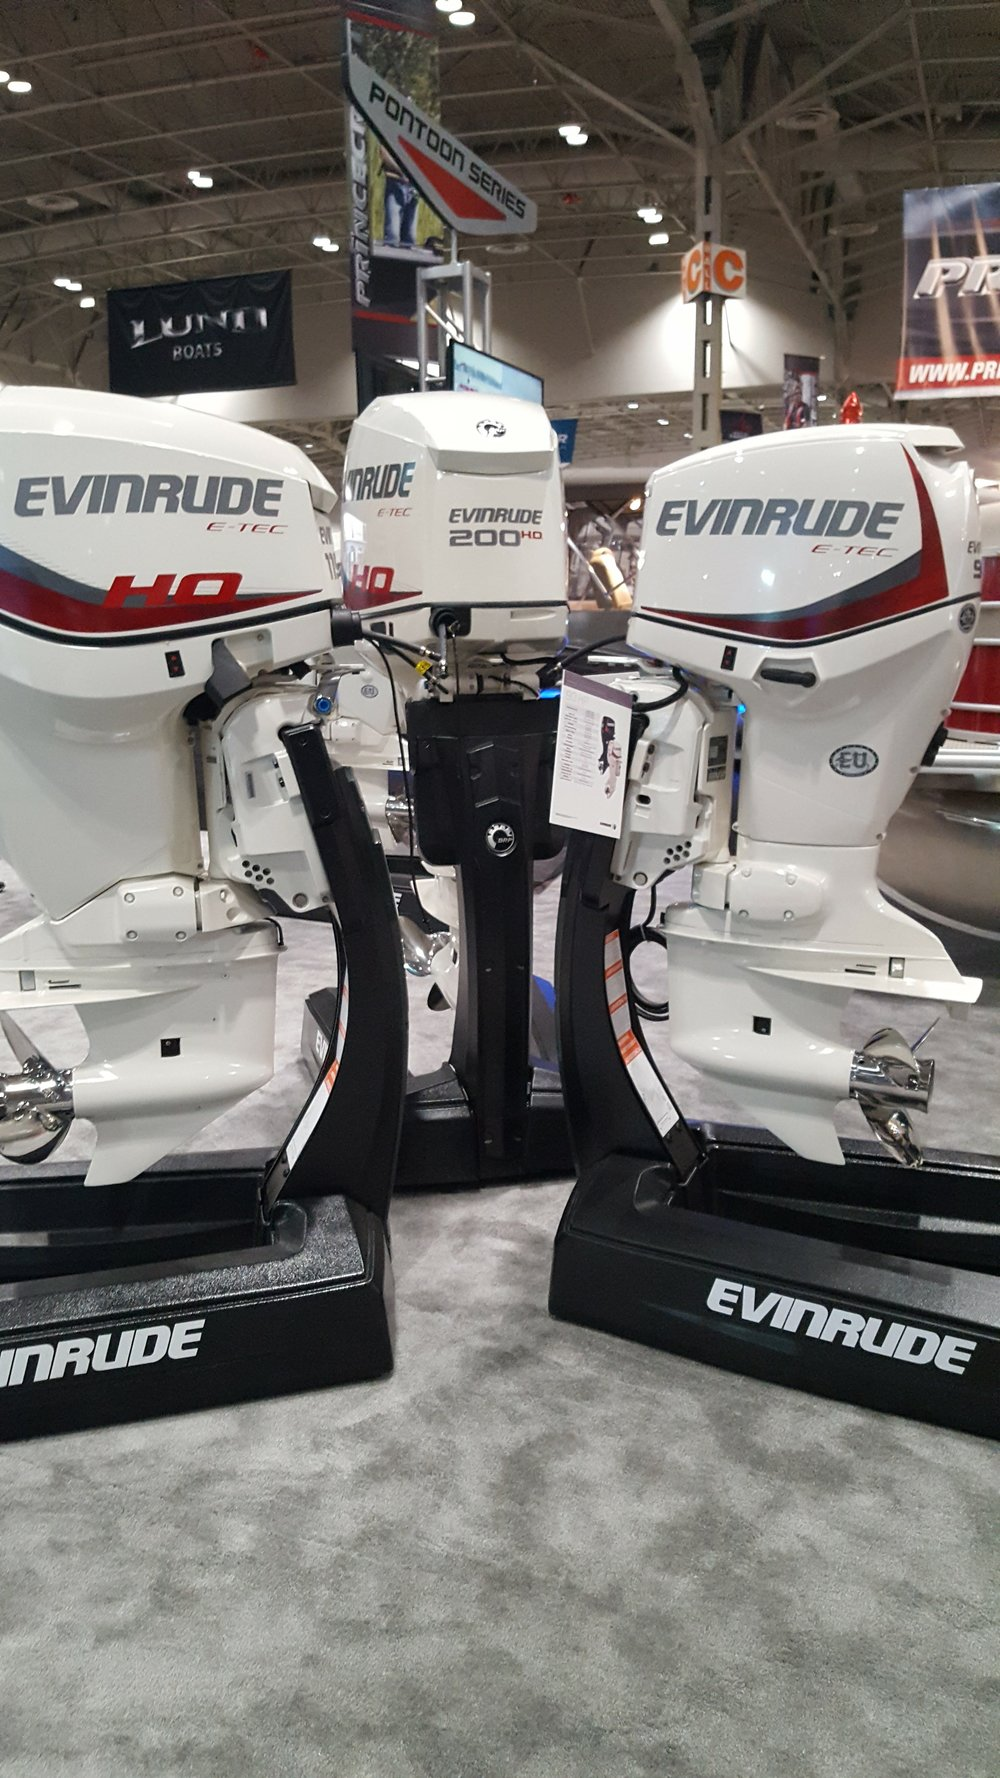 2-Stroke - Formerly the lightest outboards on the market from 135 to 200, the E-Tecs are being phased out.